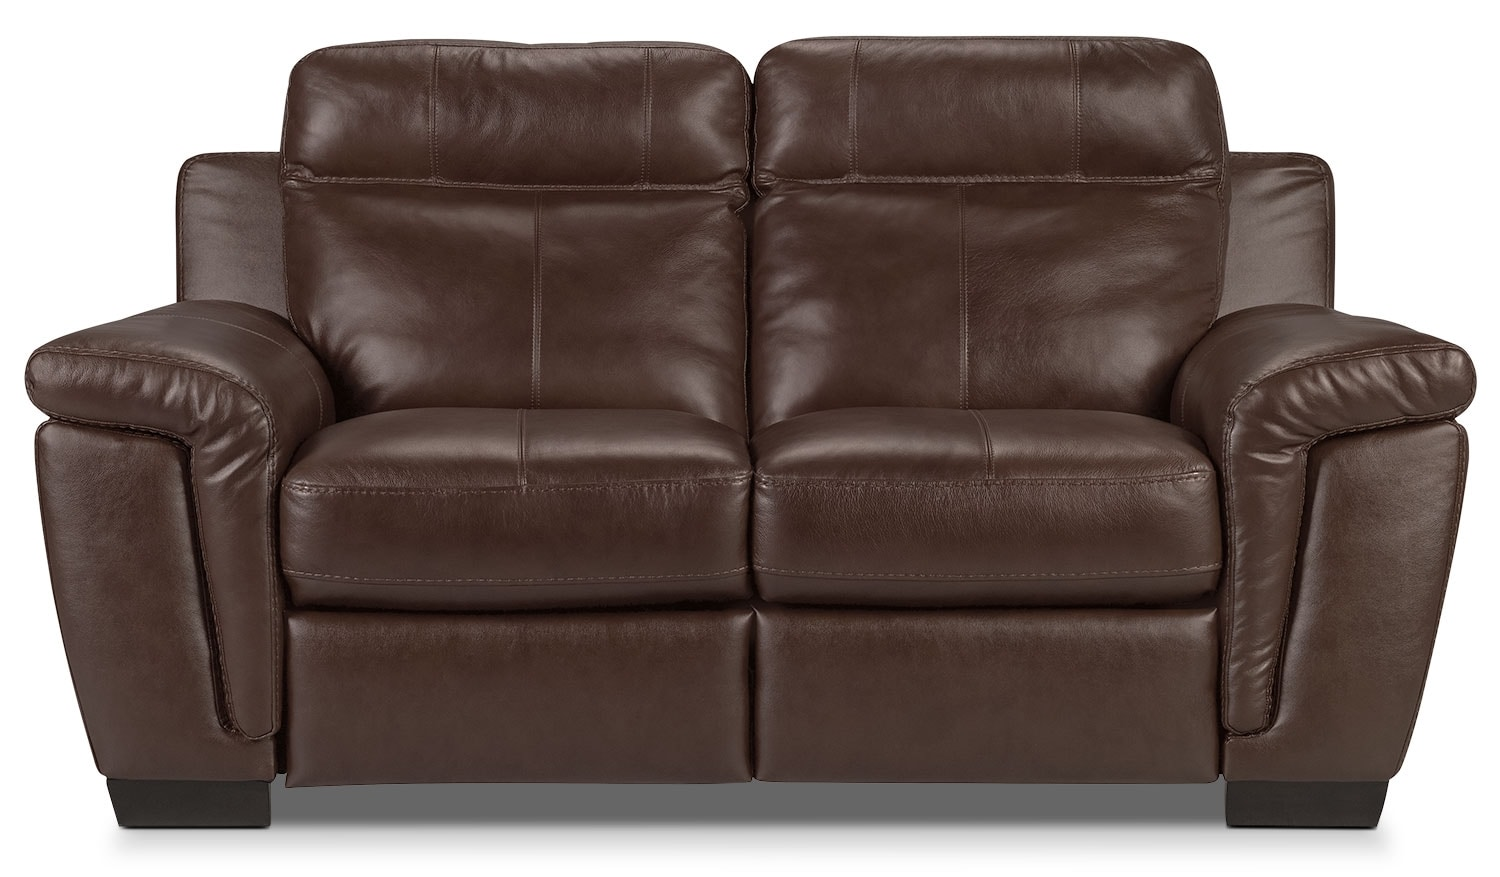 Living Room Furniture - Seth Genuine Leather Loveseat - Mahogany